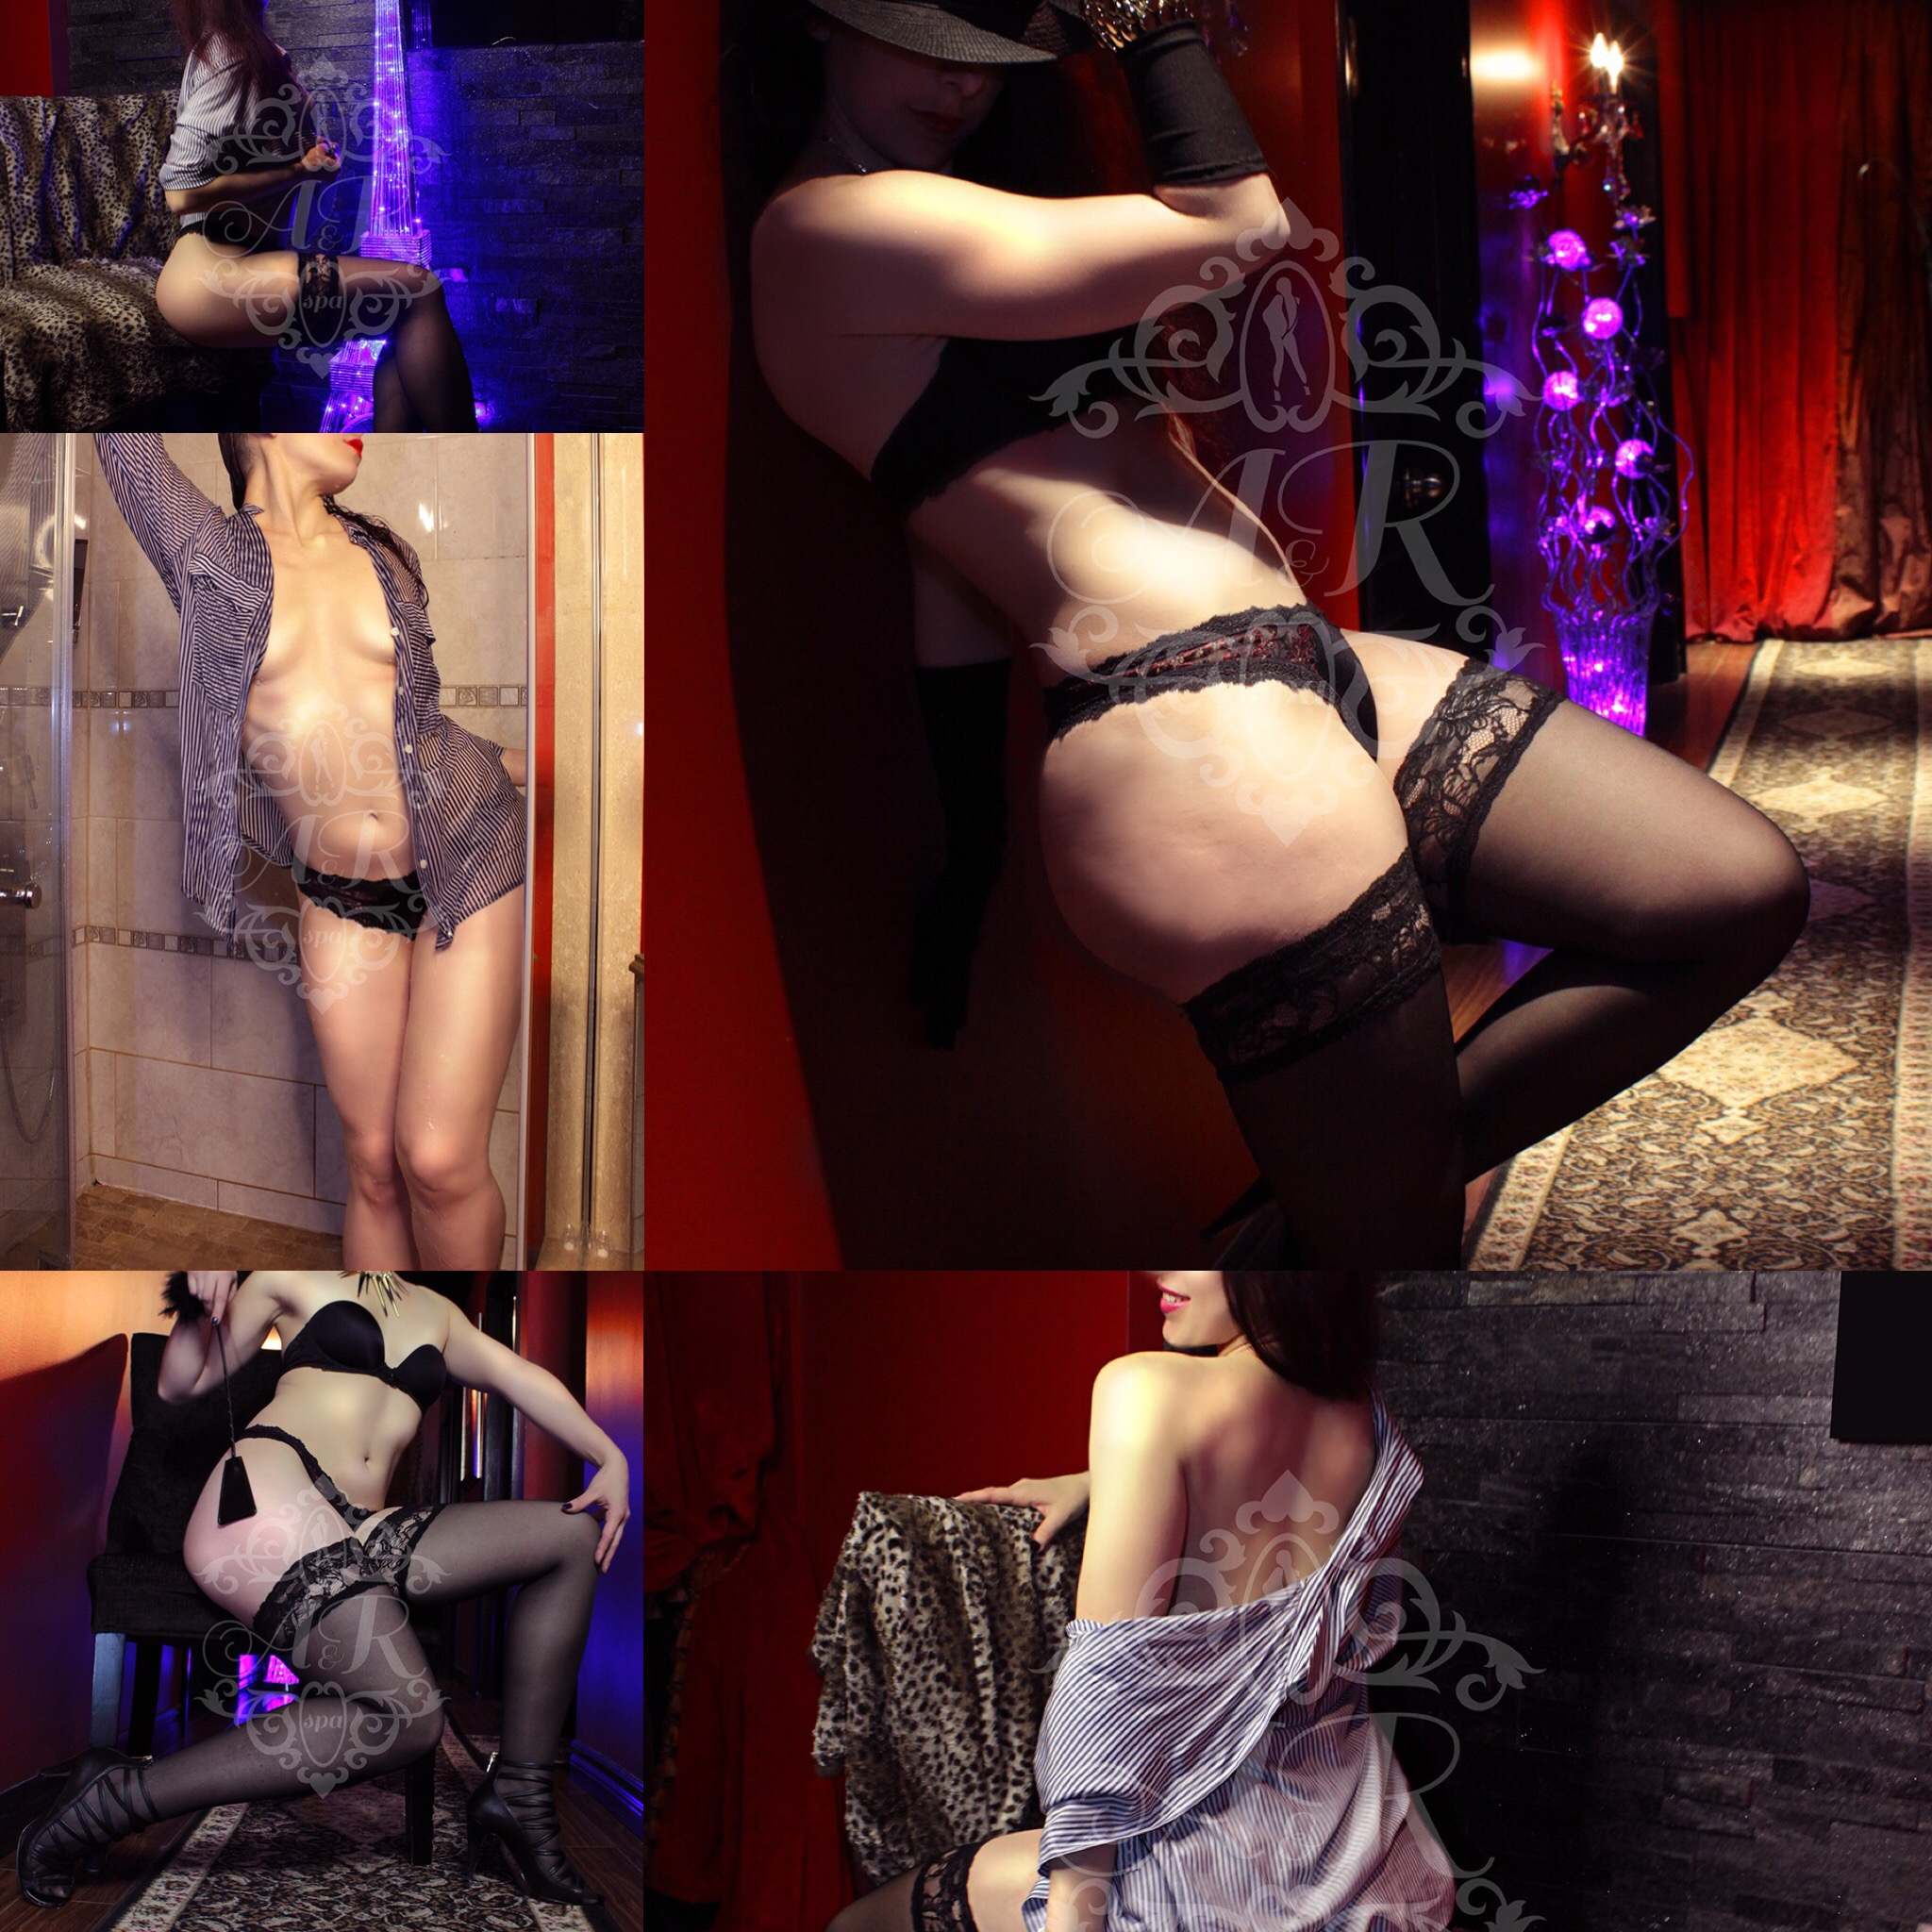 """💜💋Addiction warning!💋 Hottest girls in town!💋 Awaits For You!💋 Satisfy Your Deepest Desires!💋💜 """"A&R Massage Studio """" 💋WHY WAIT? 💜 Call 416-760-8555💋💜"""